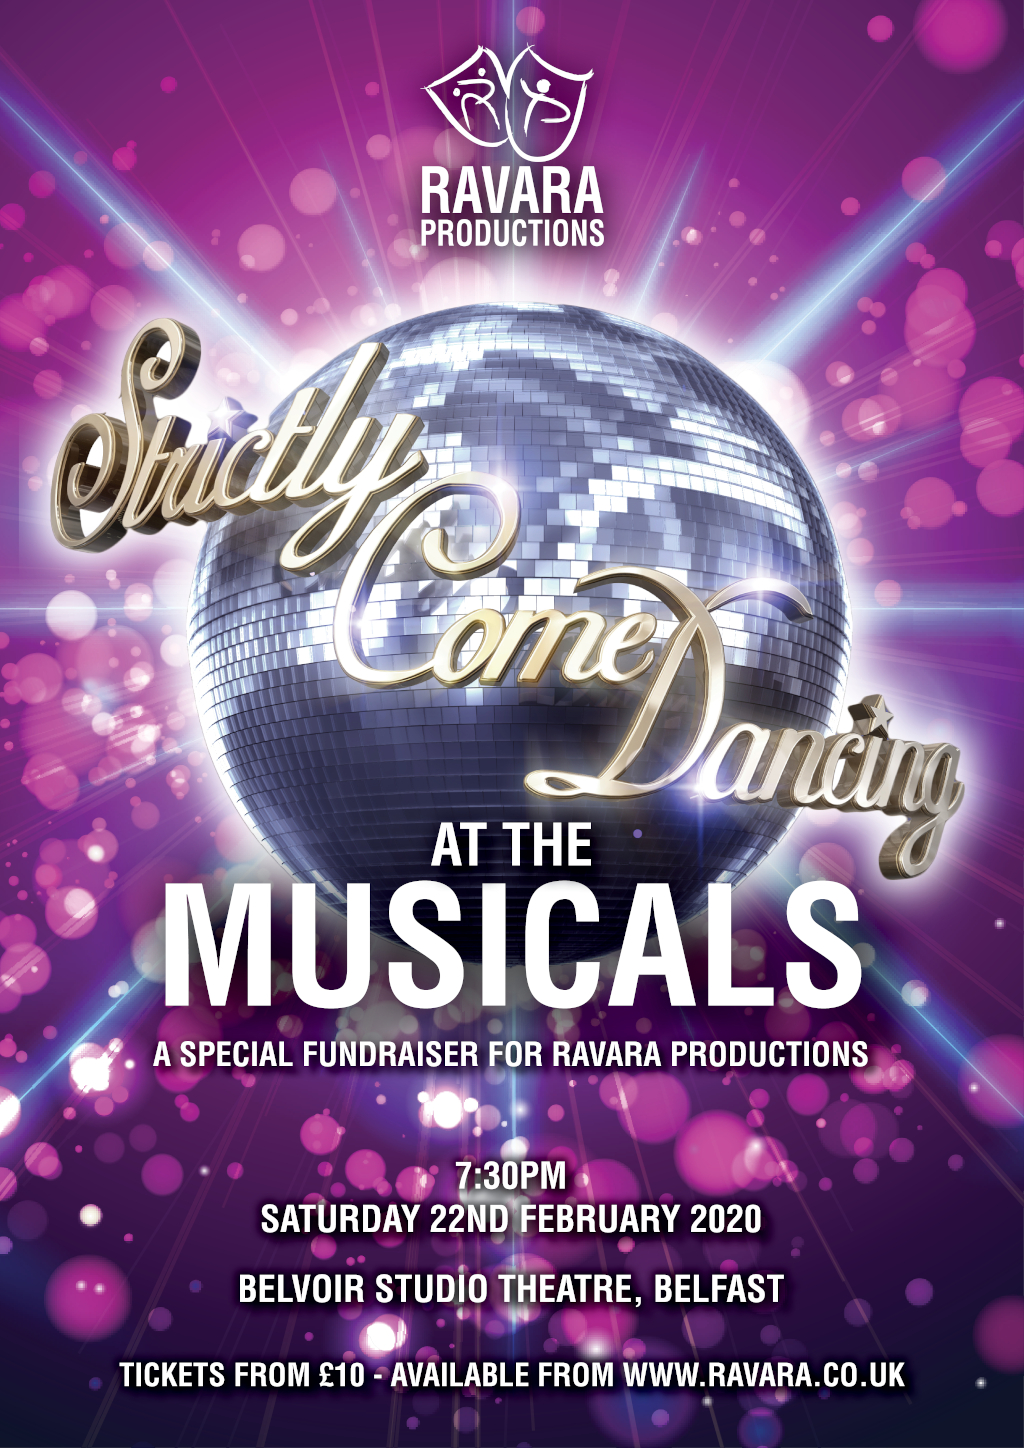 Ravara Productions present Strictly Come Dancing at the Musicals!